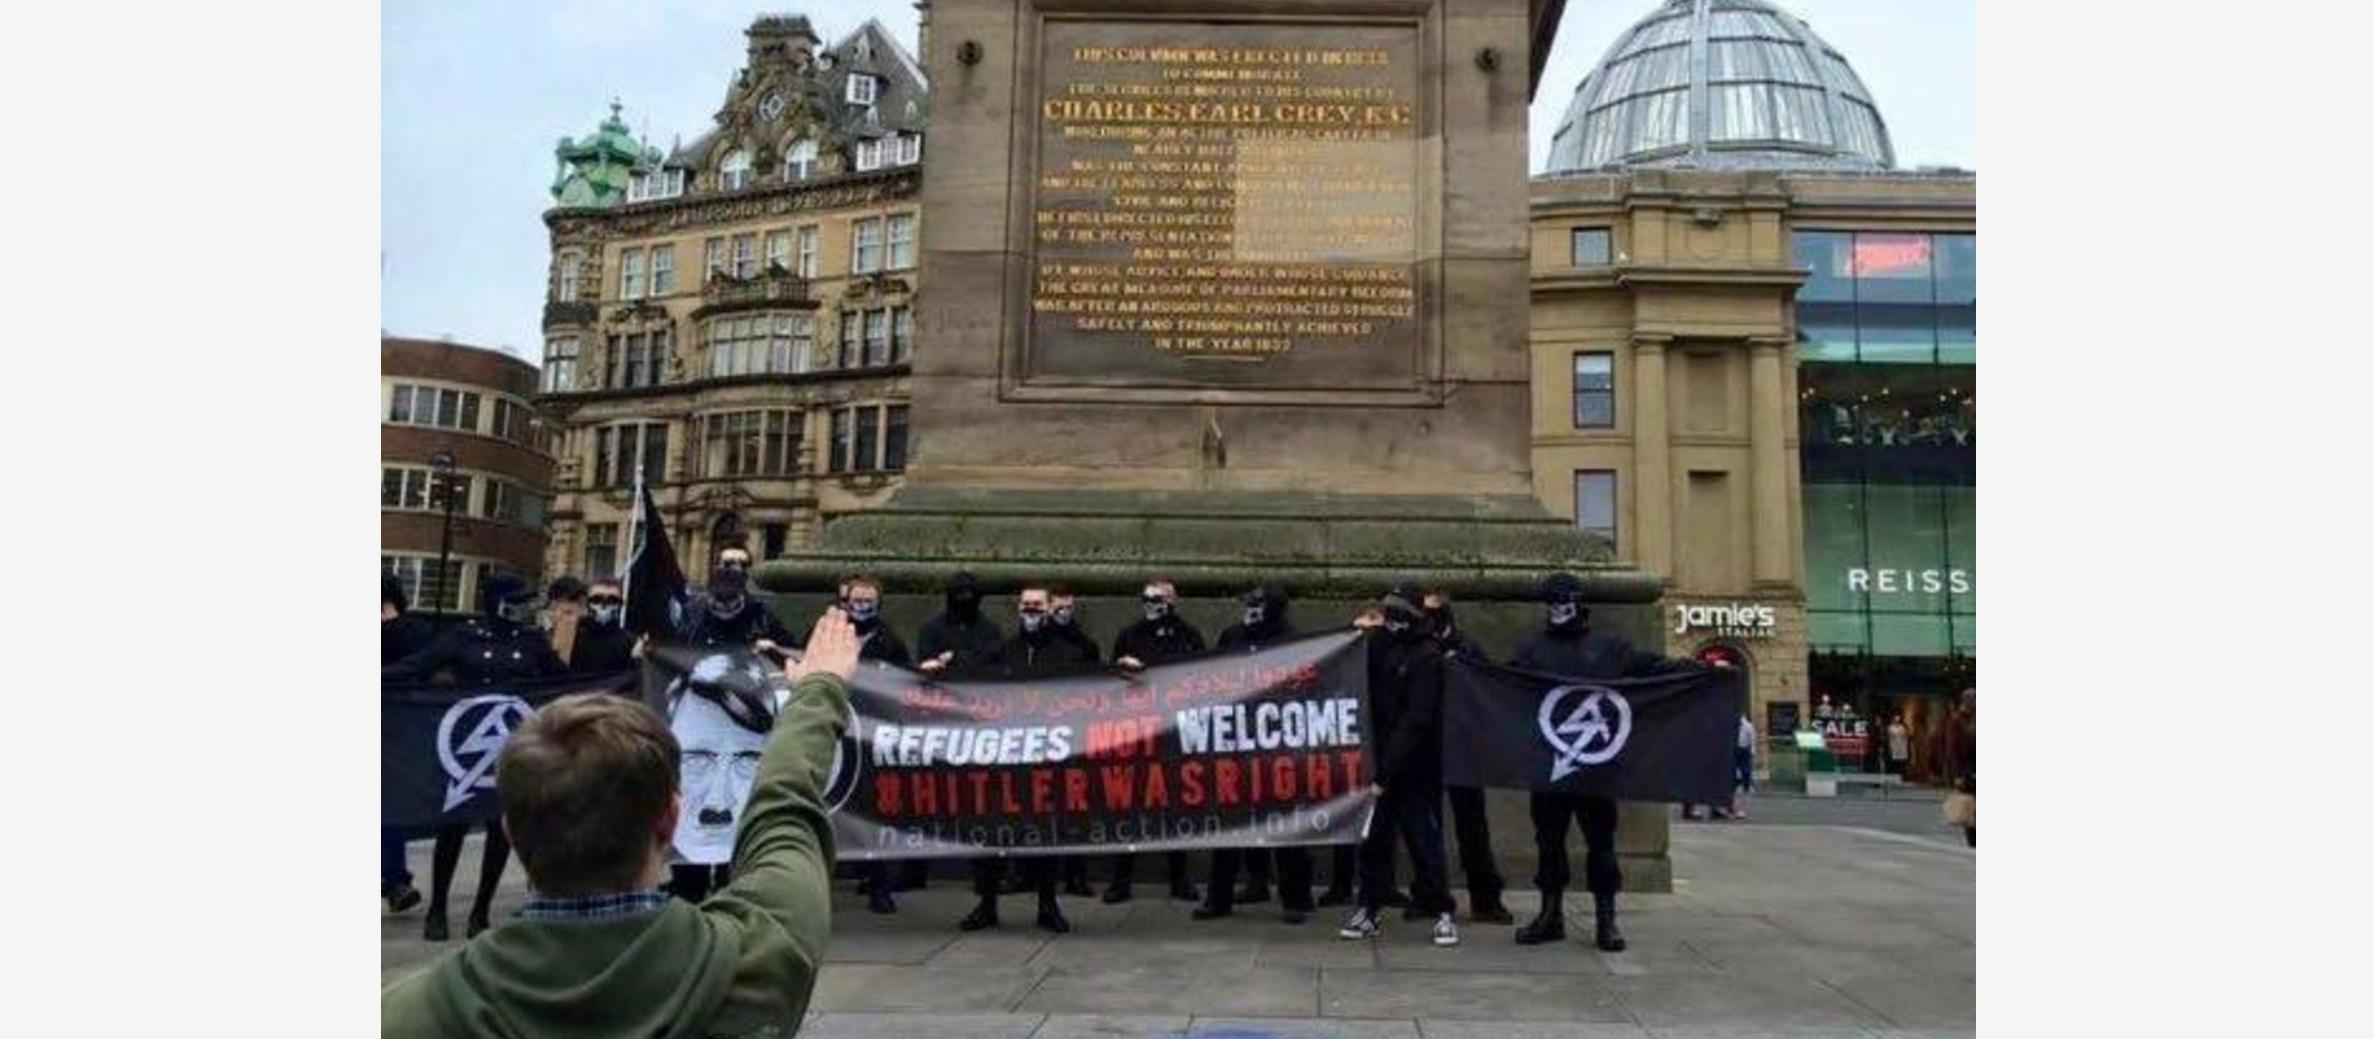 Neo-Nazis demonstrate with 'Hitler Was Right' banner in Newcastle